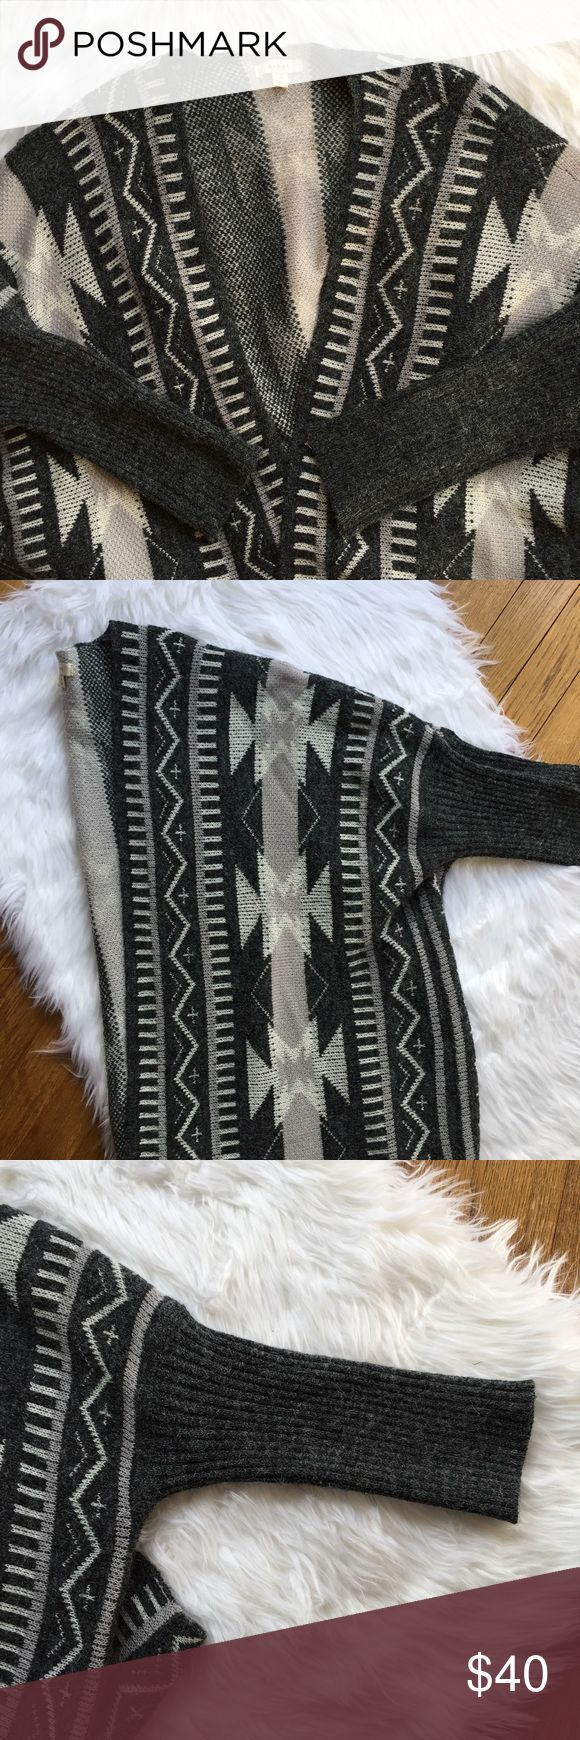 NWOT debut soft cardigan Extremely soft and fuzzy Aztec print cardigan. Open front with ribbed sleeves. Brand is debut. Size M/L. Different shades of gray with some ivory and light  tan colors mixed in/ debut Sweaters Cardigans